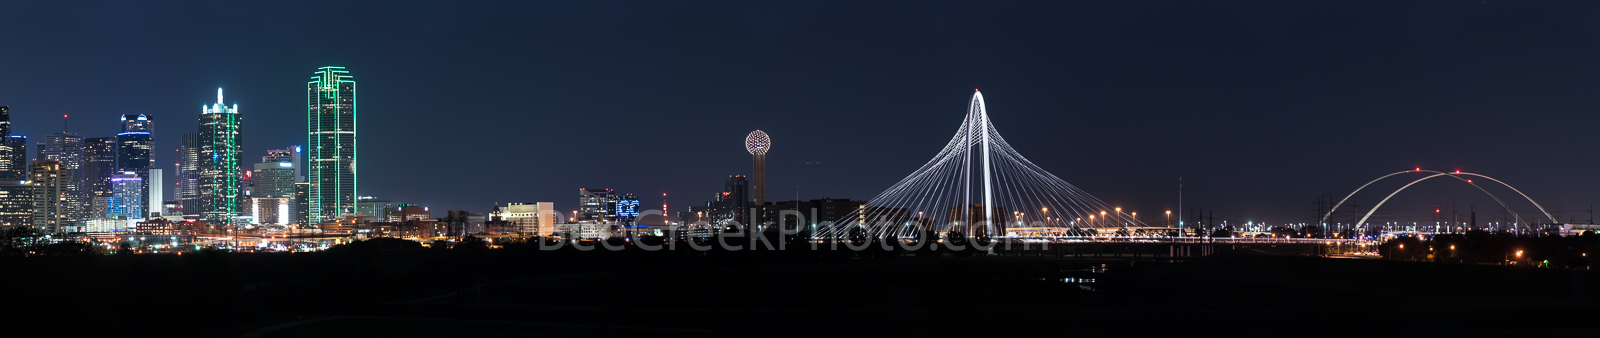 Dallas, skyline, view, Margaret McDermott Bridge, Margaret Hunt Hill Bridge, cityscape, downtown, iconic, Reunion Tower, bank of america plaza,Renaissance Tower, Comercia Bank Tower, Omin Hotel, high , photo